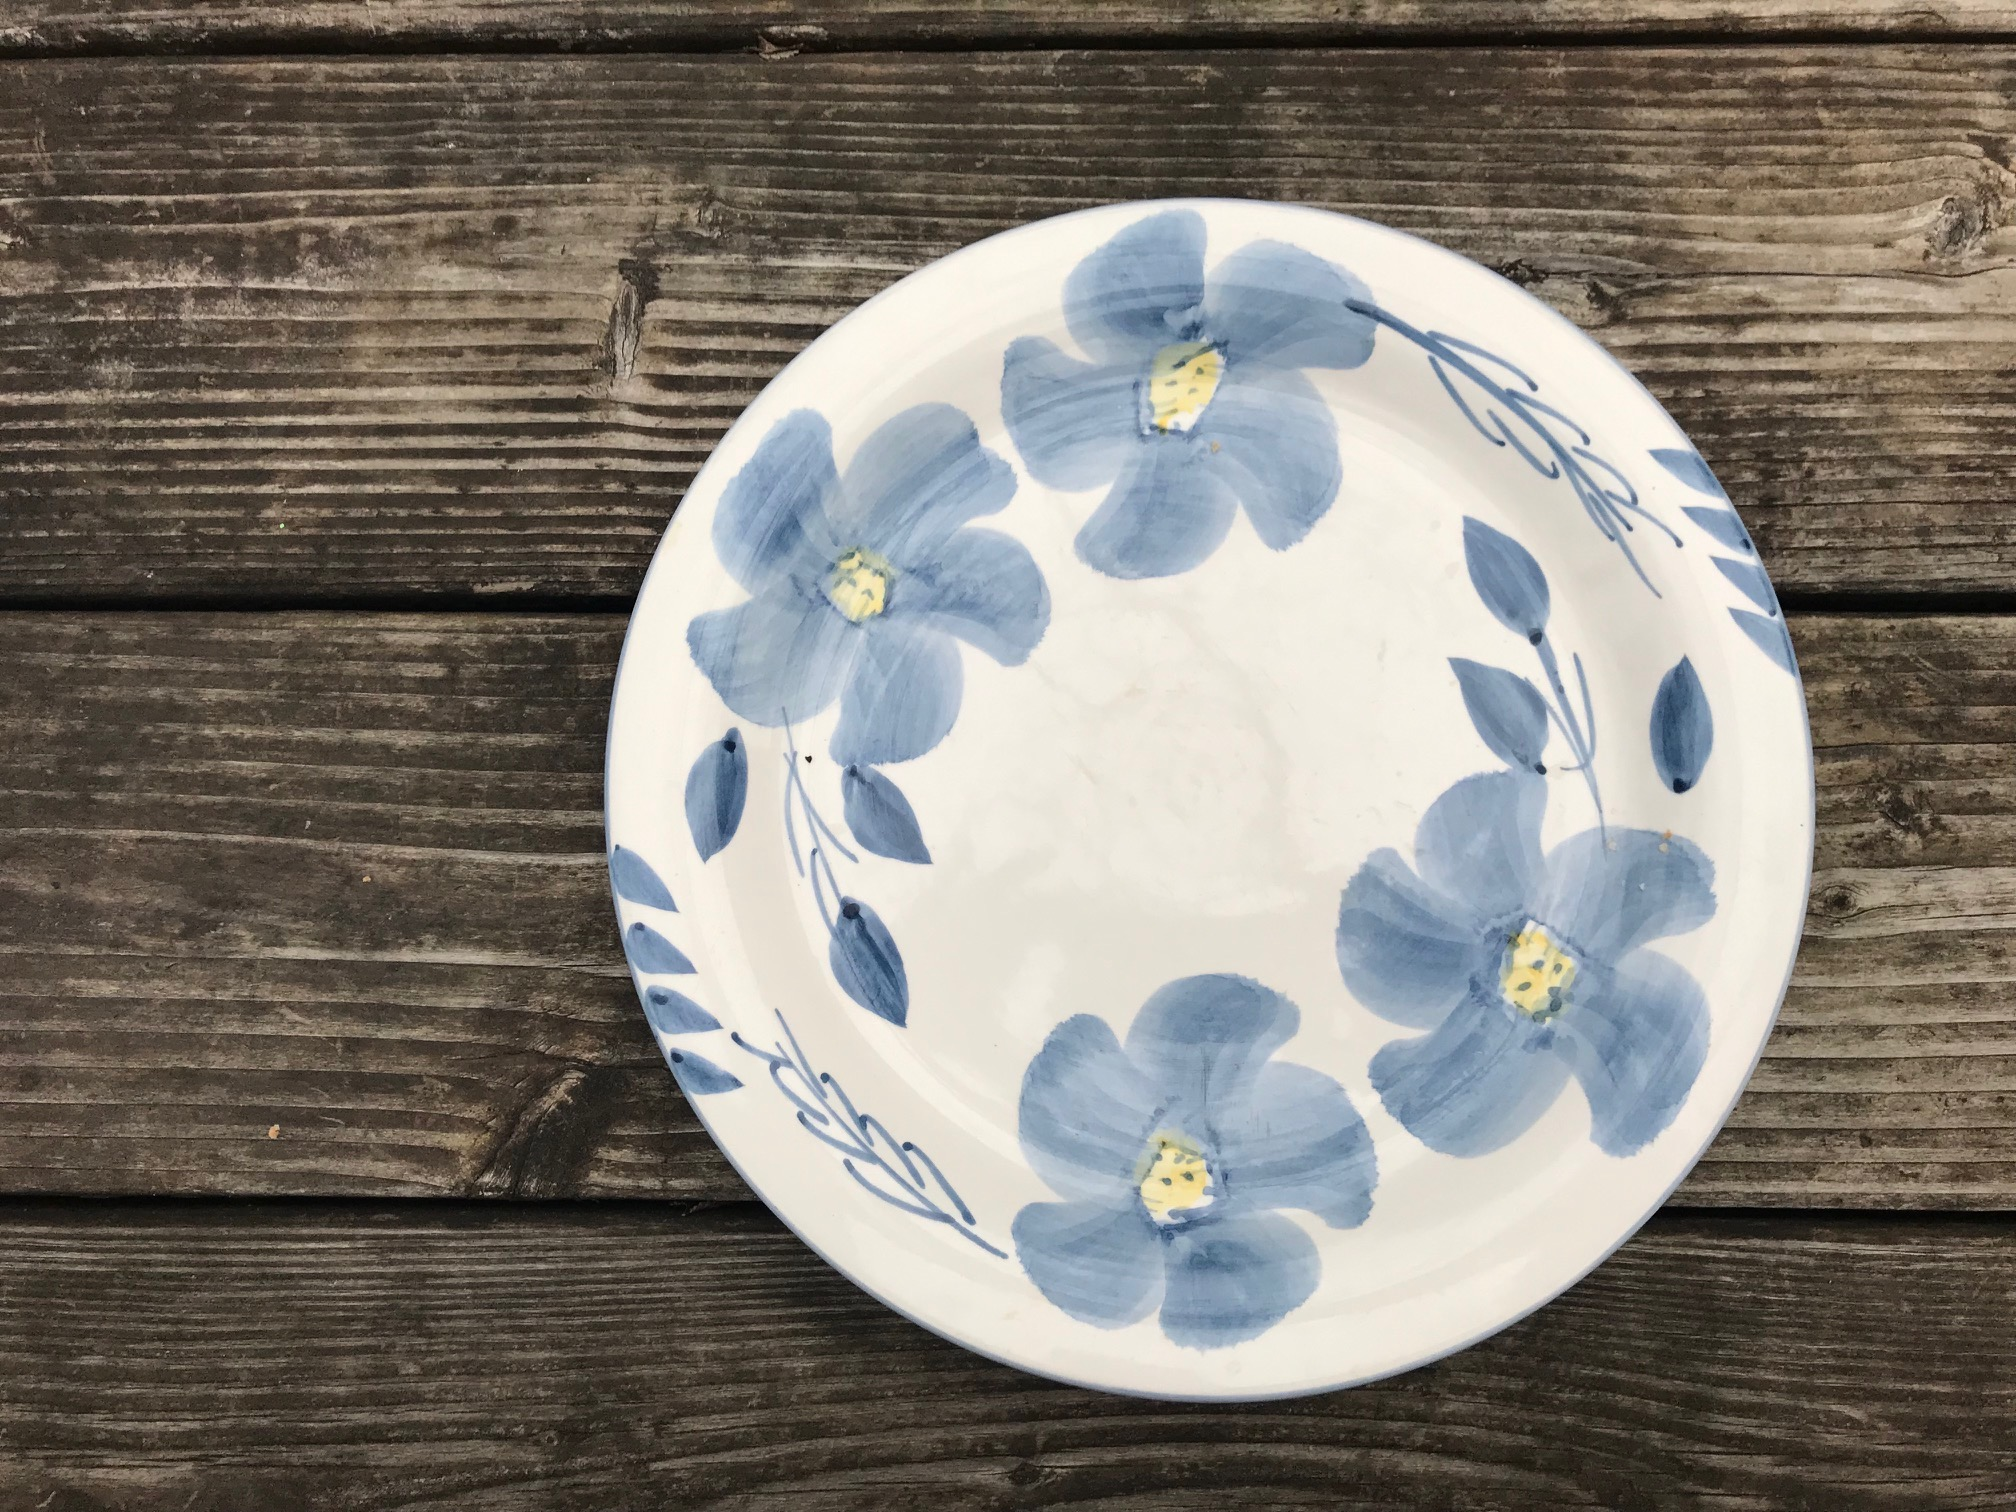 99 Cent Only Store c. 1999 Floral Pattern Ceramic Plate (No Maker's Mark): 49,400 +/- 1,400 ppm Lead.